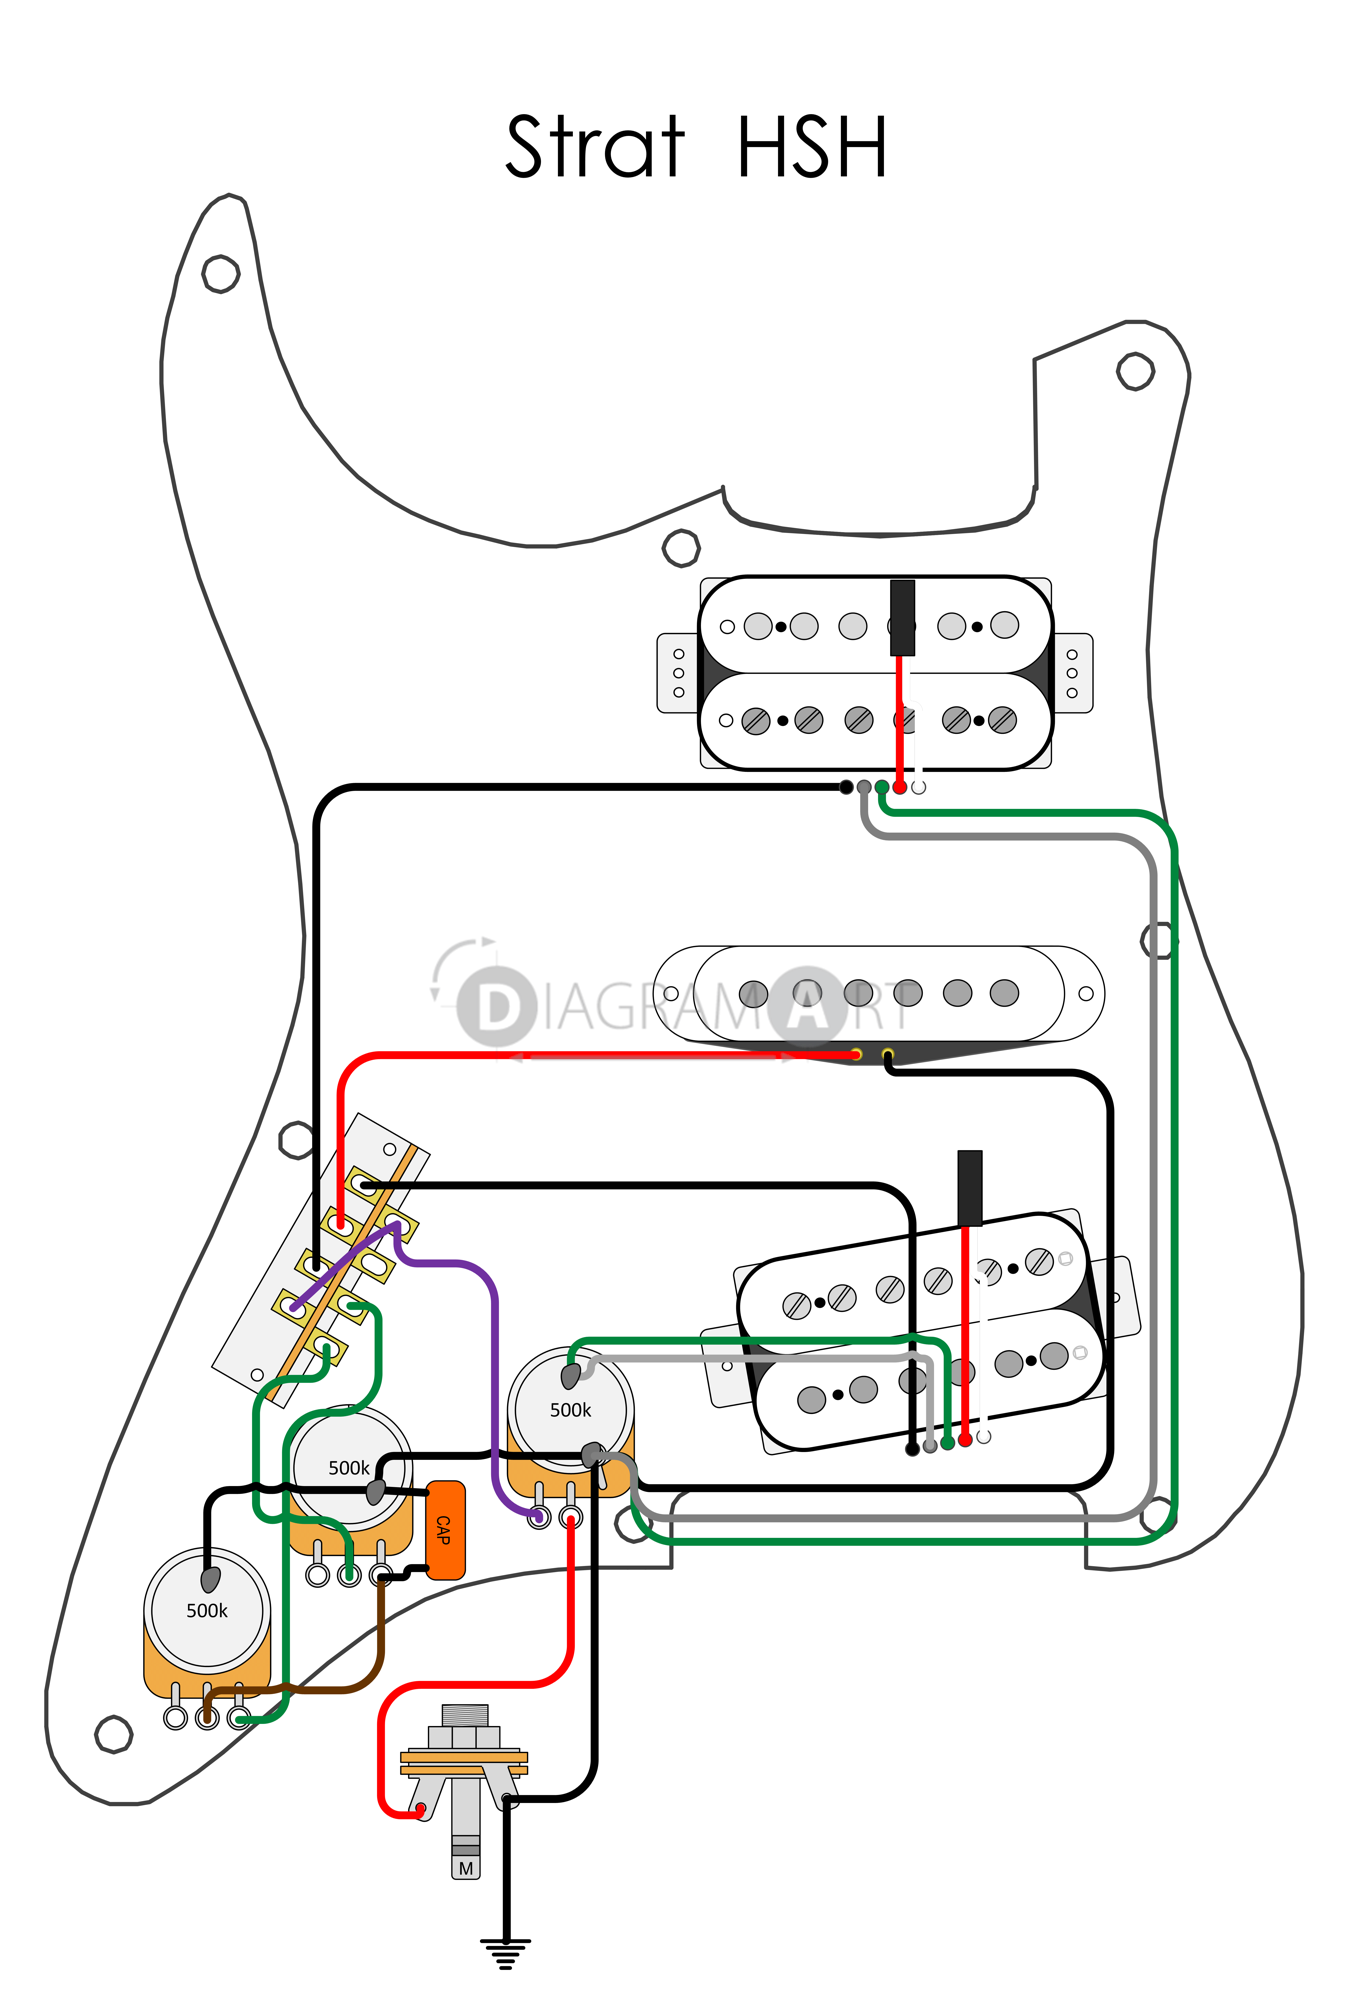 download_ef870d50 d966 419d a0f4 22998adecec6?v=1476390216 electric guitar wiring strat hsh [electric circuit] diagramart hsh guitar wiring diagrams at mifinder.co